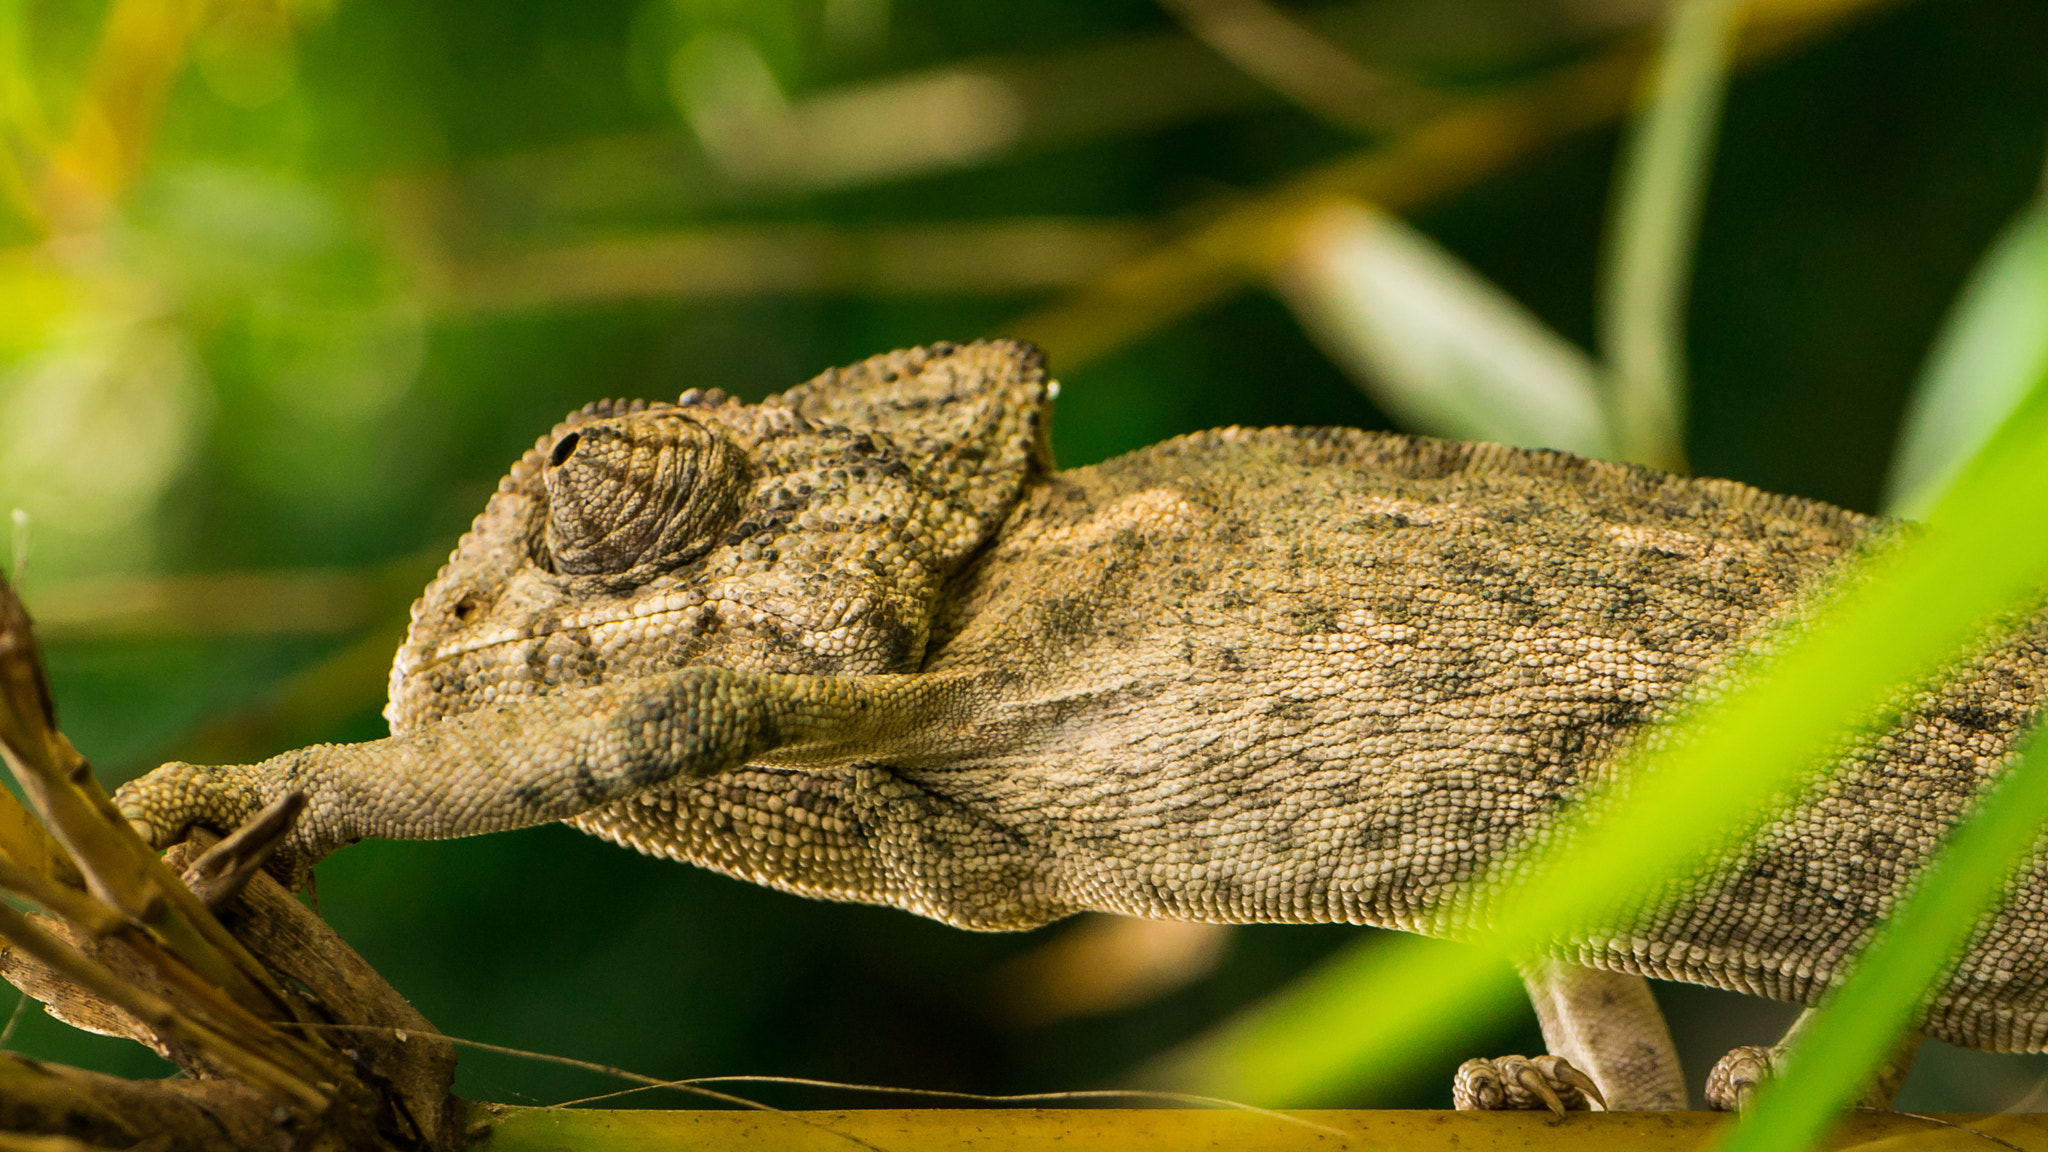 Photograph Chameleon - 4 by Amine Fassi on 500px